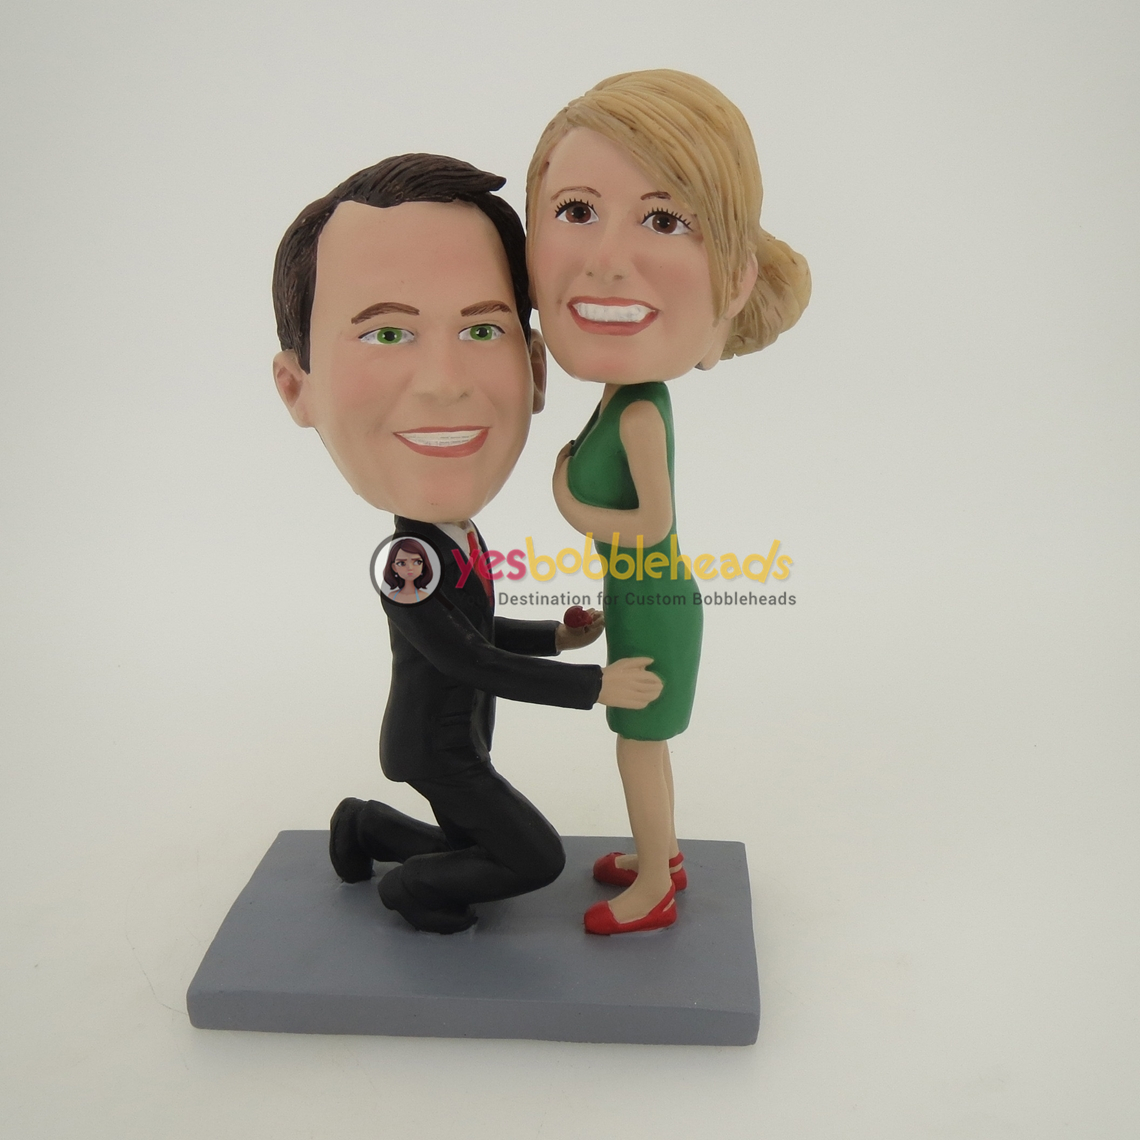 Picture of Custom Bobblehead Doll: Propose Couple